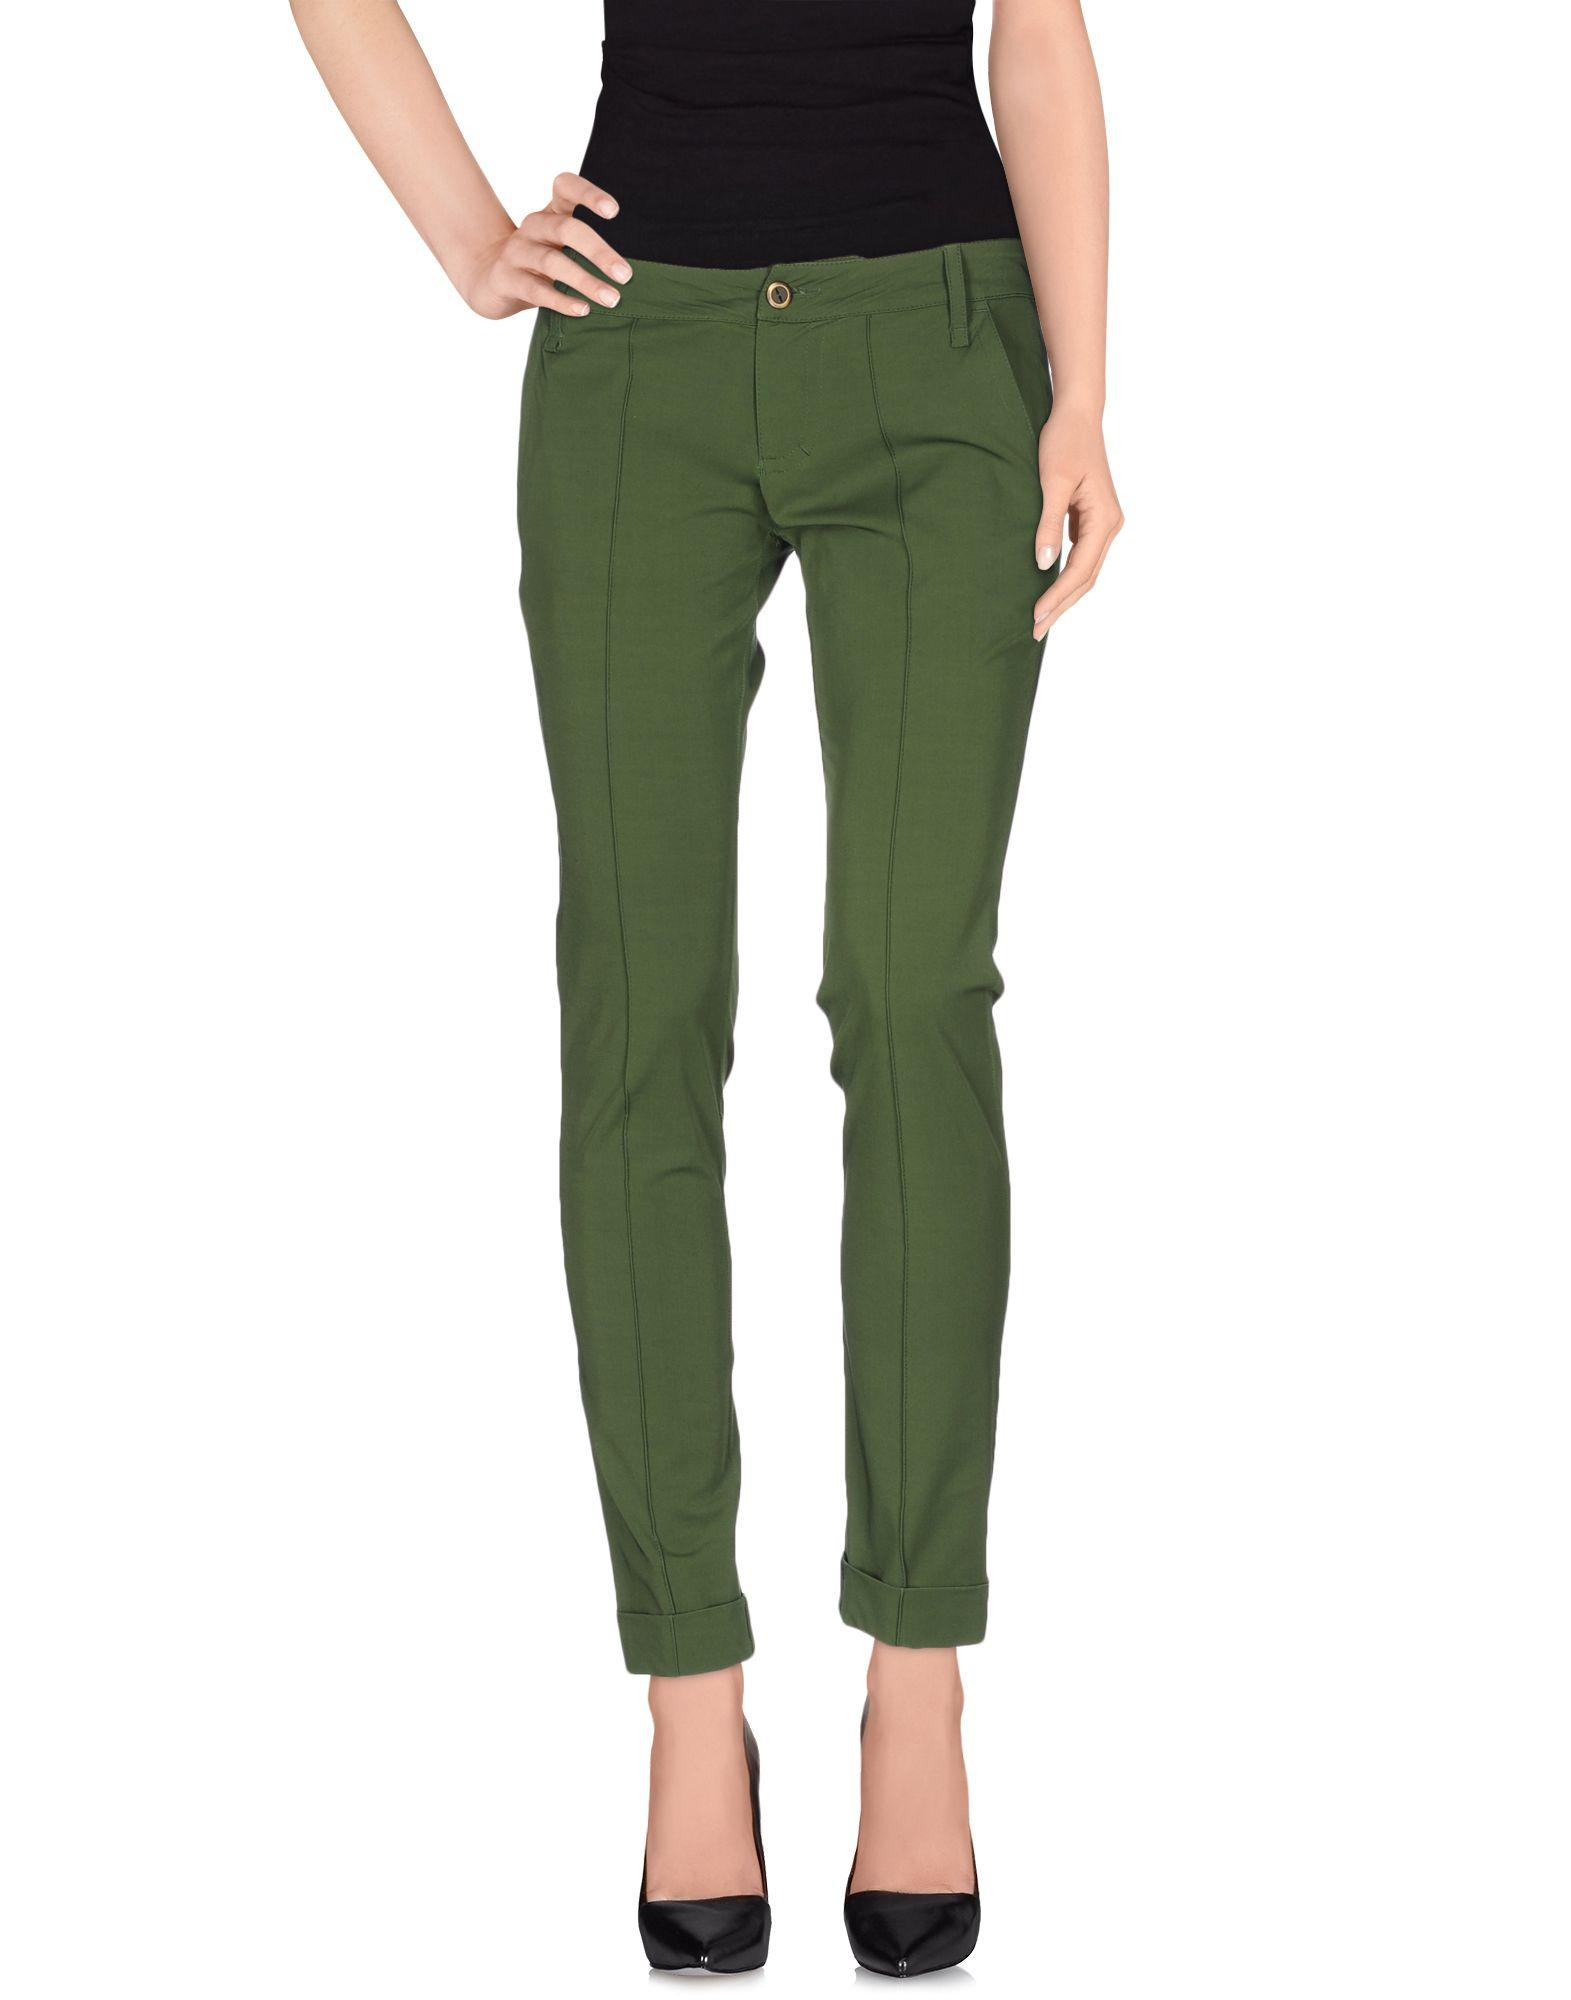 Plein Sud Casual Pants In Military Green